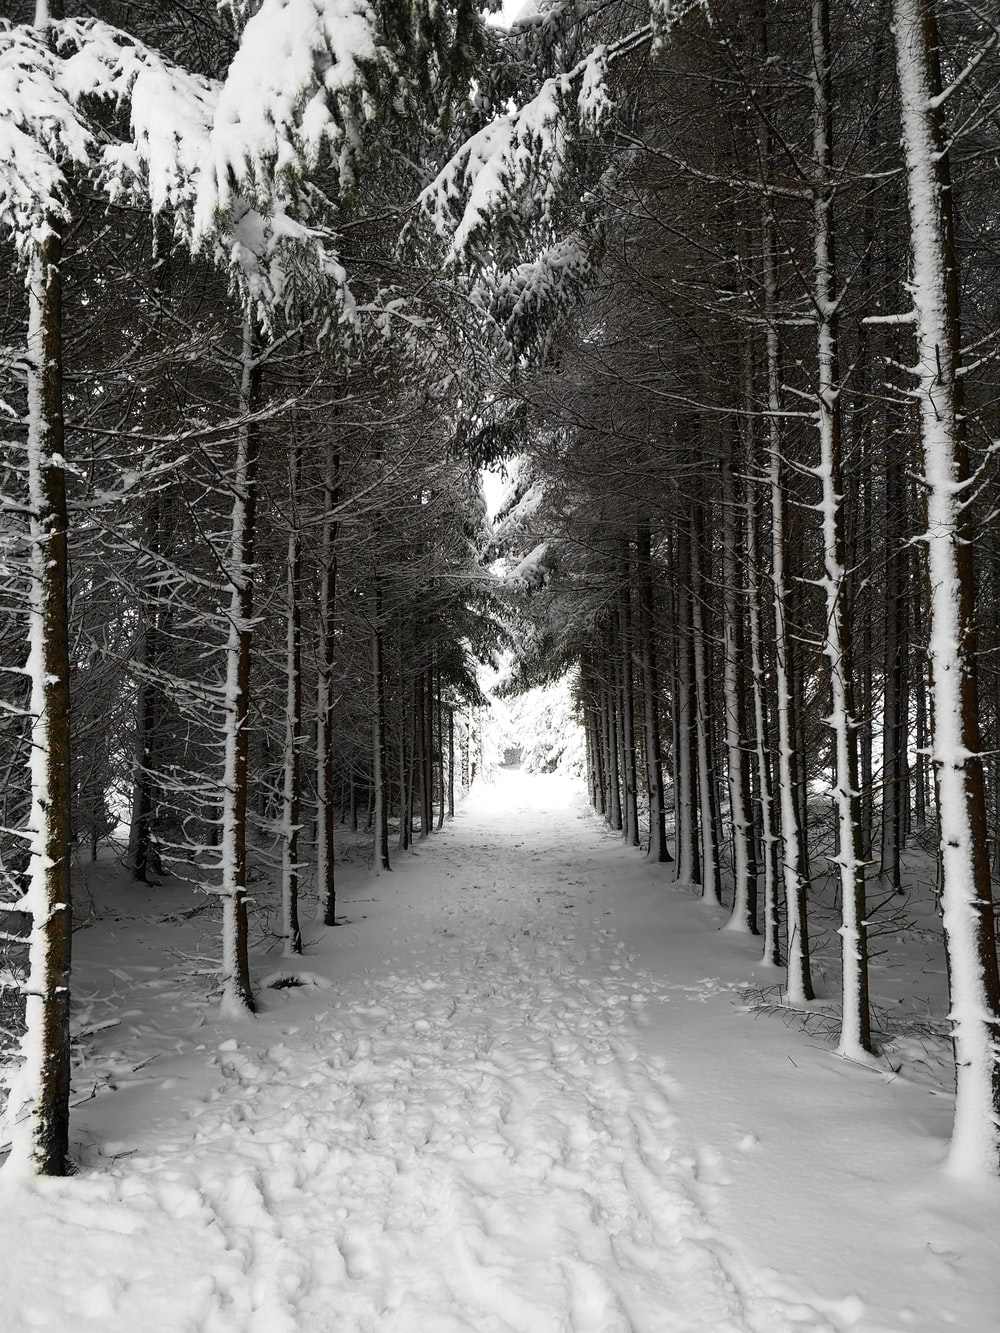 pathway between trees coated with snow